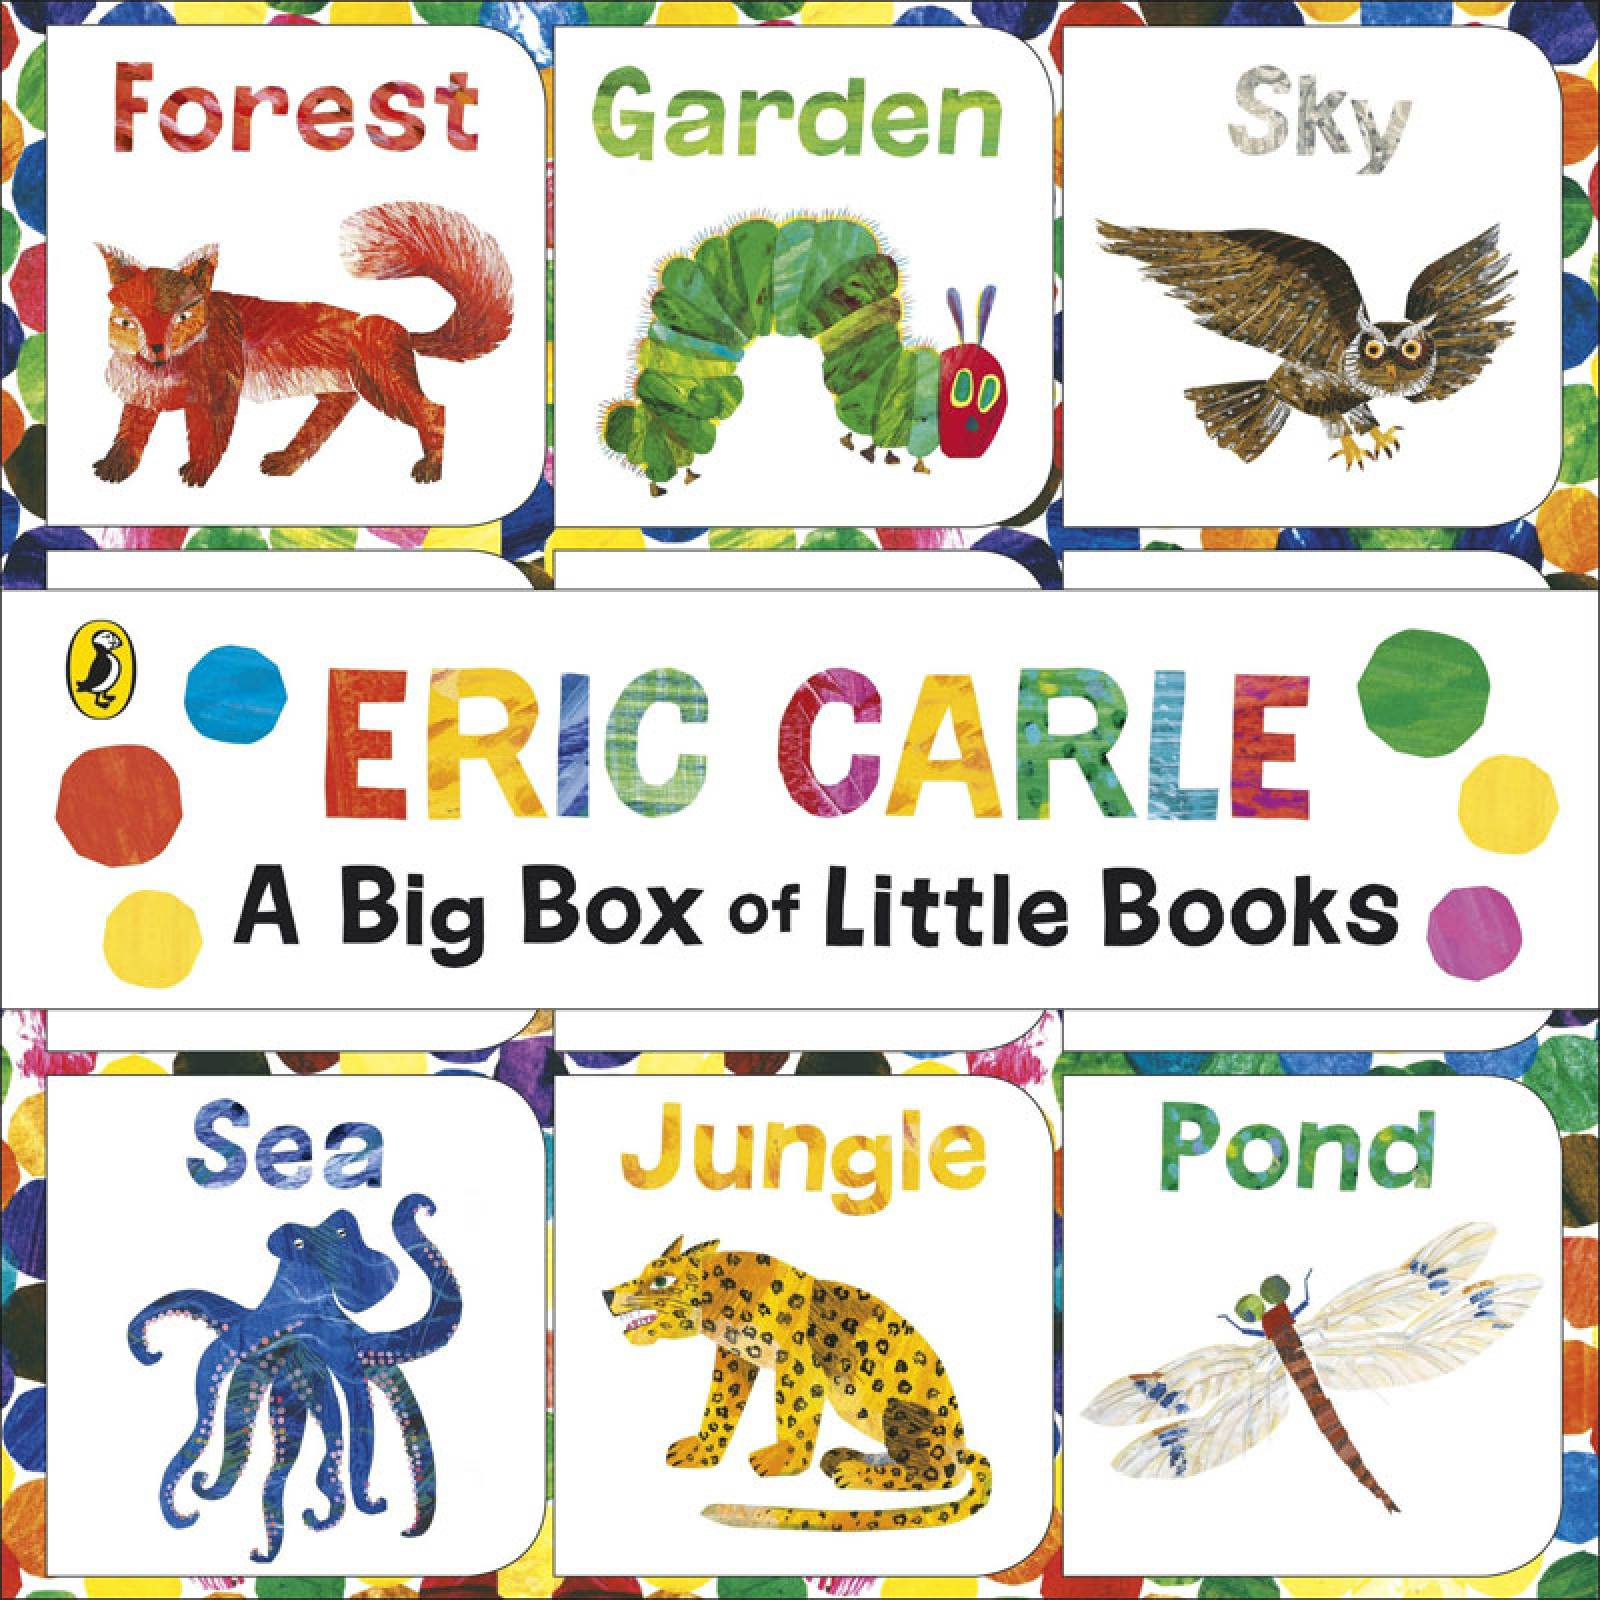 Big Box Of Little Books - By Eric Carle